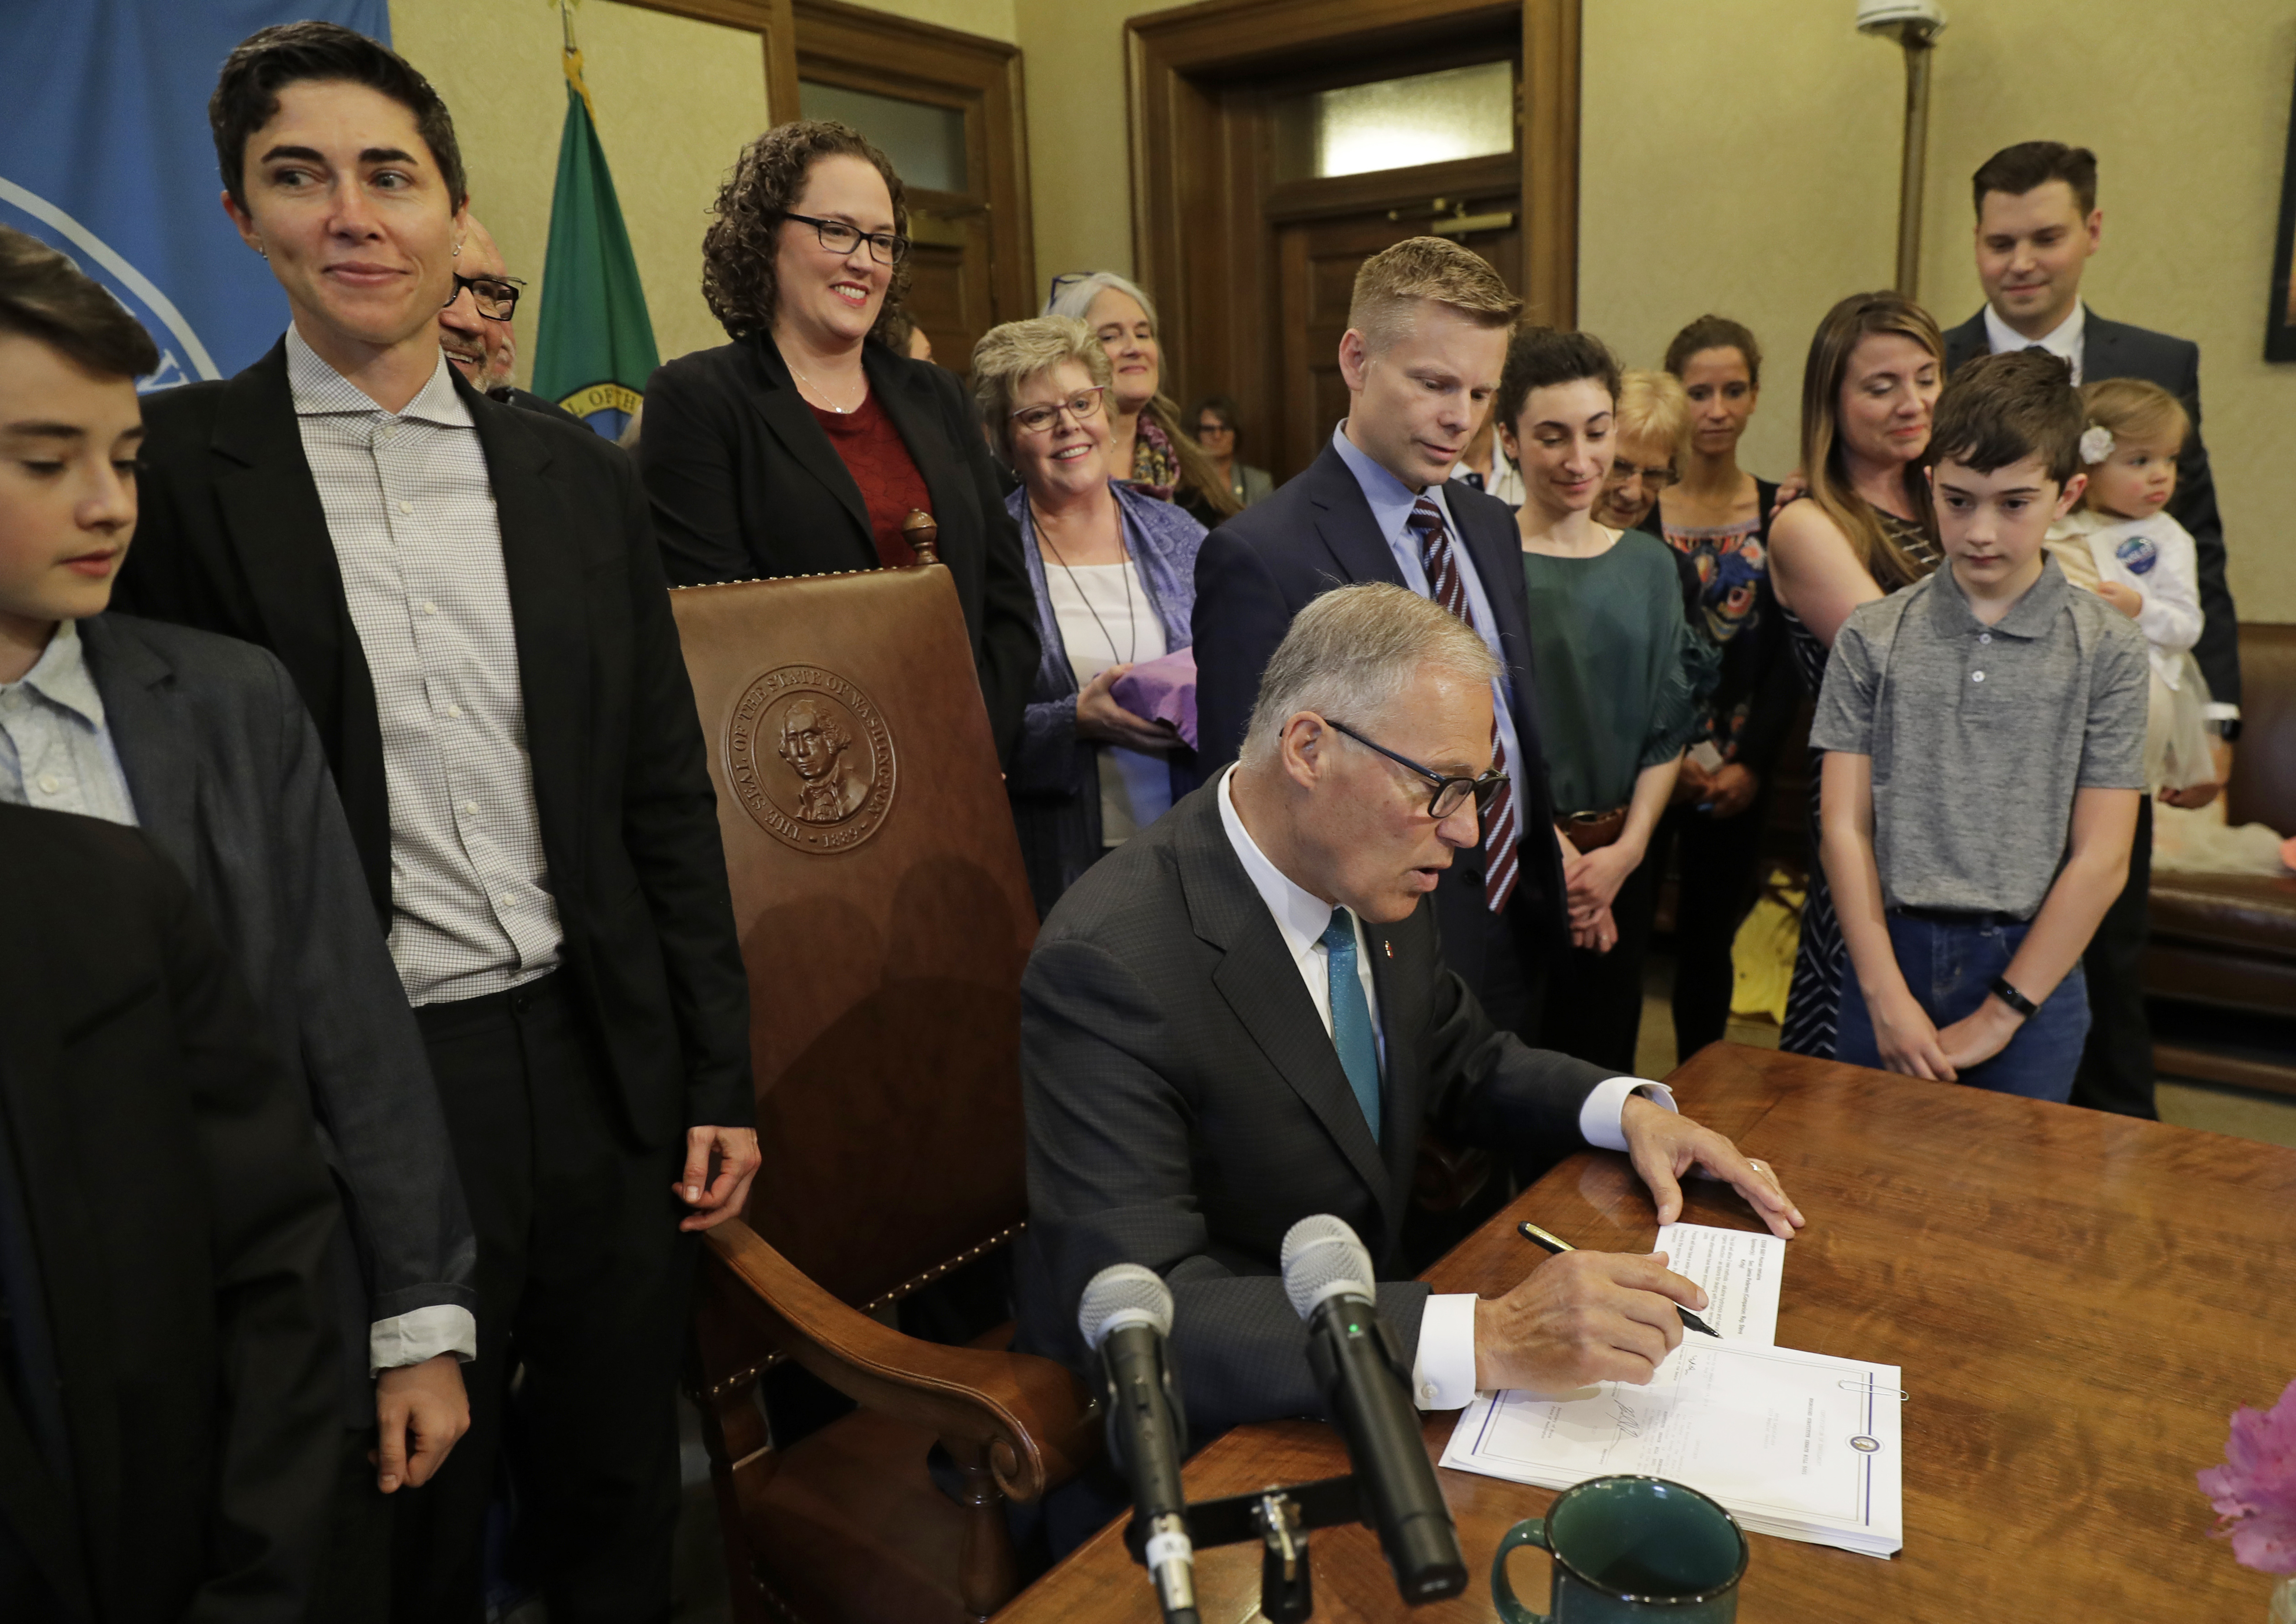 Katrina Spade, upper left, the founder and CEO of Recompose, looks on May 21, 2019, as Washington Gov. Jay Inslee, center, signs a bill into law that allows licensed facilities to offer 'human composting' services.